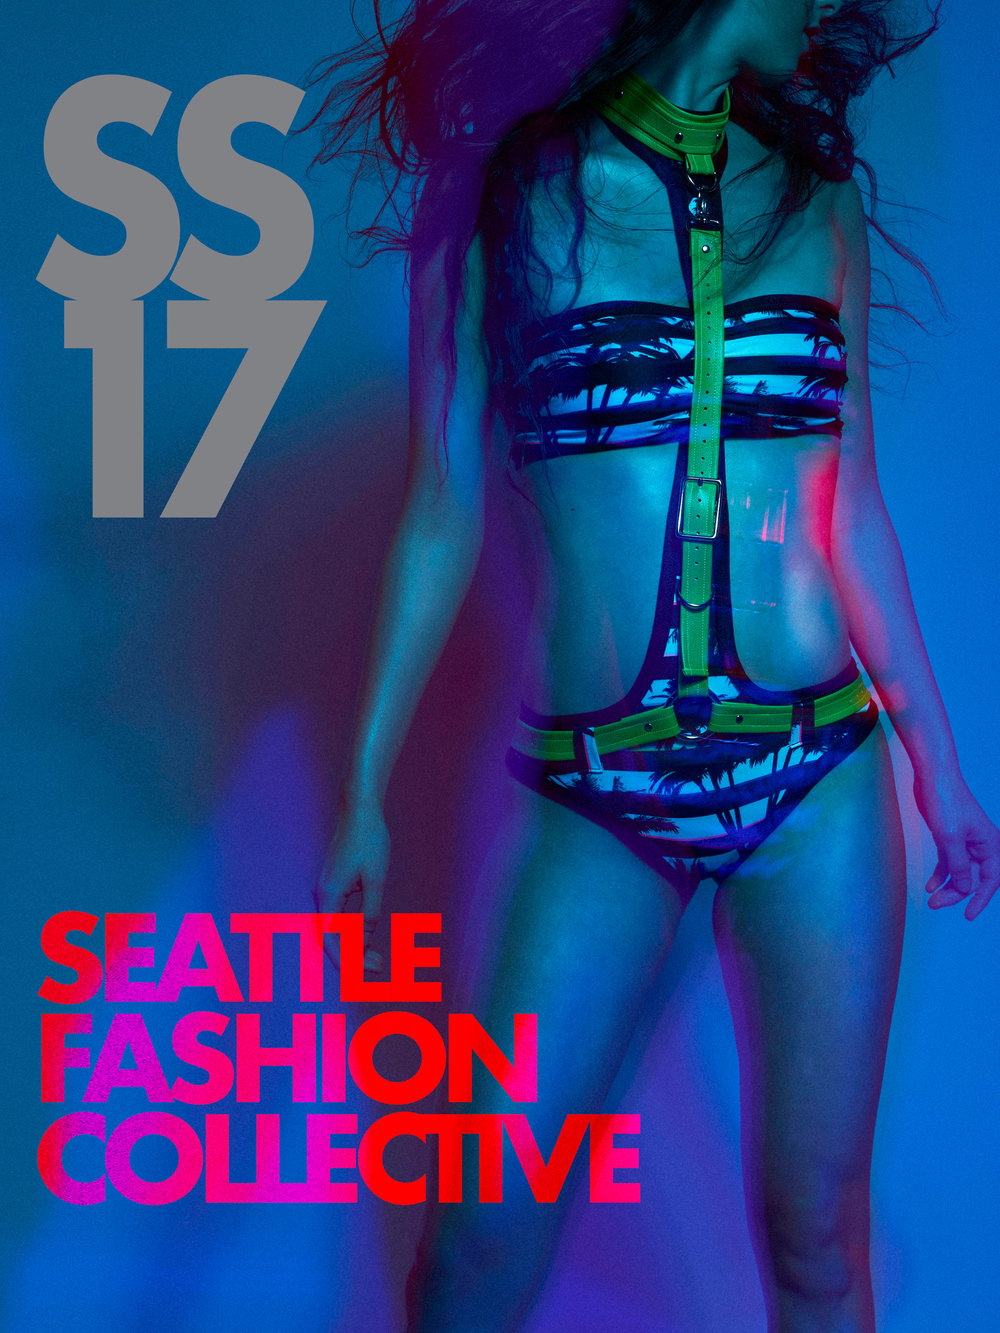 SS17_Seattle-Fashion-Collective-Magazine_Issue-01_UPDATED43.jpg